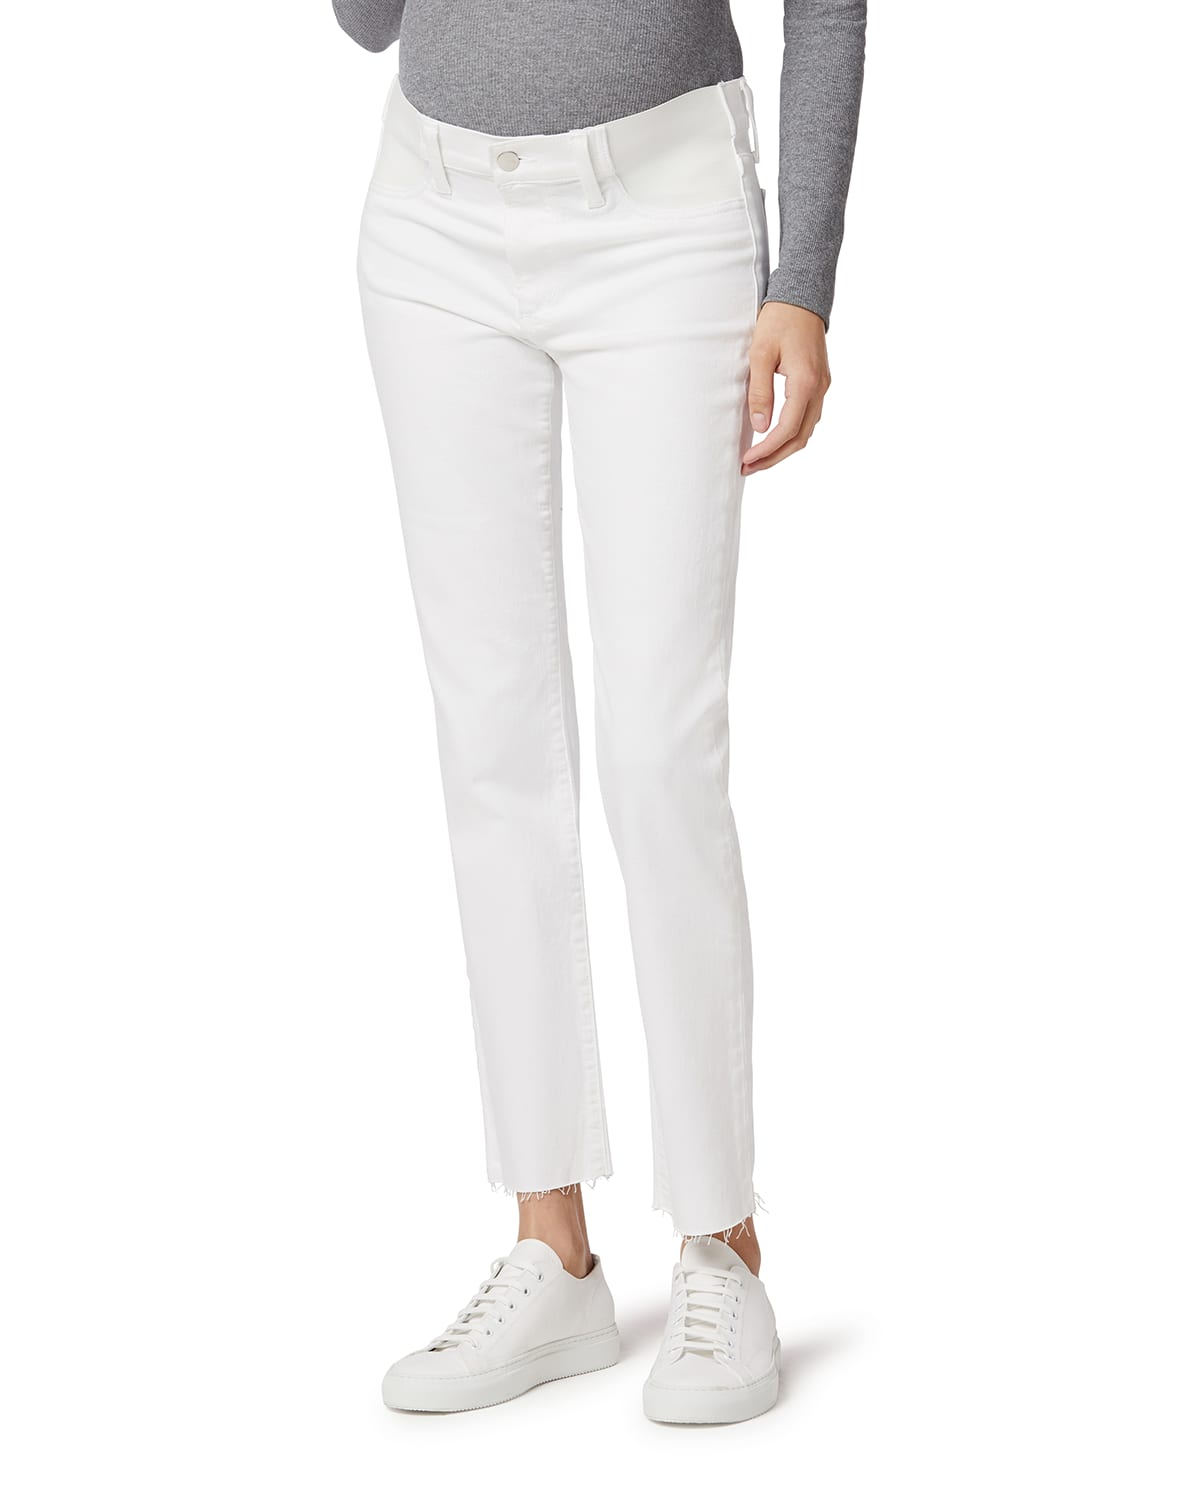 Maternity The Lara Ankle Jeans with Frayed Hem